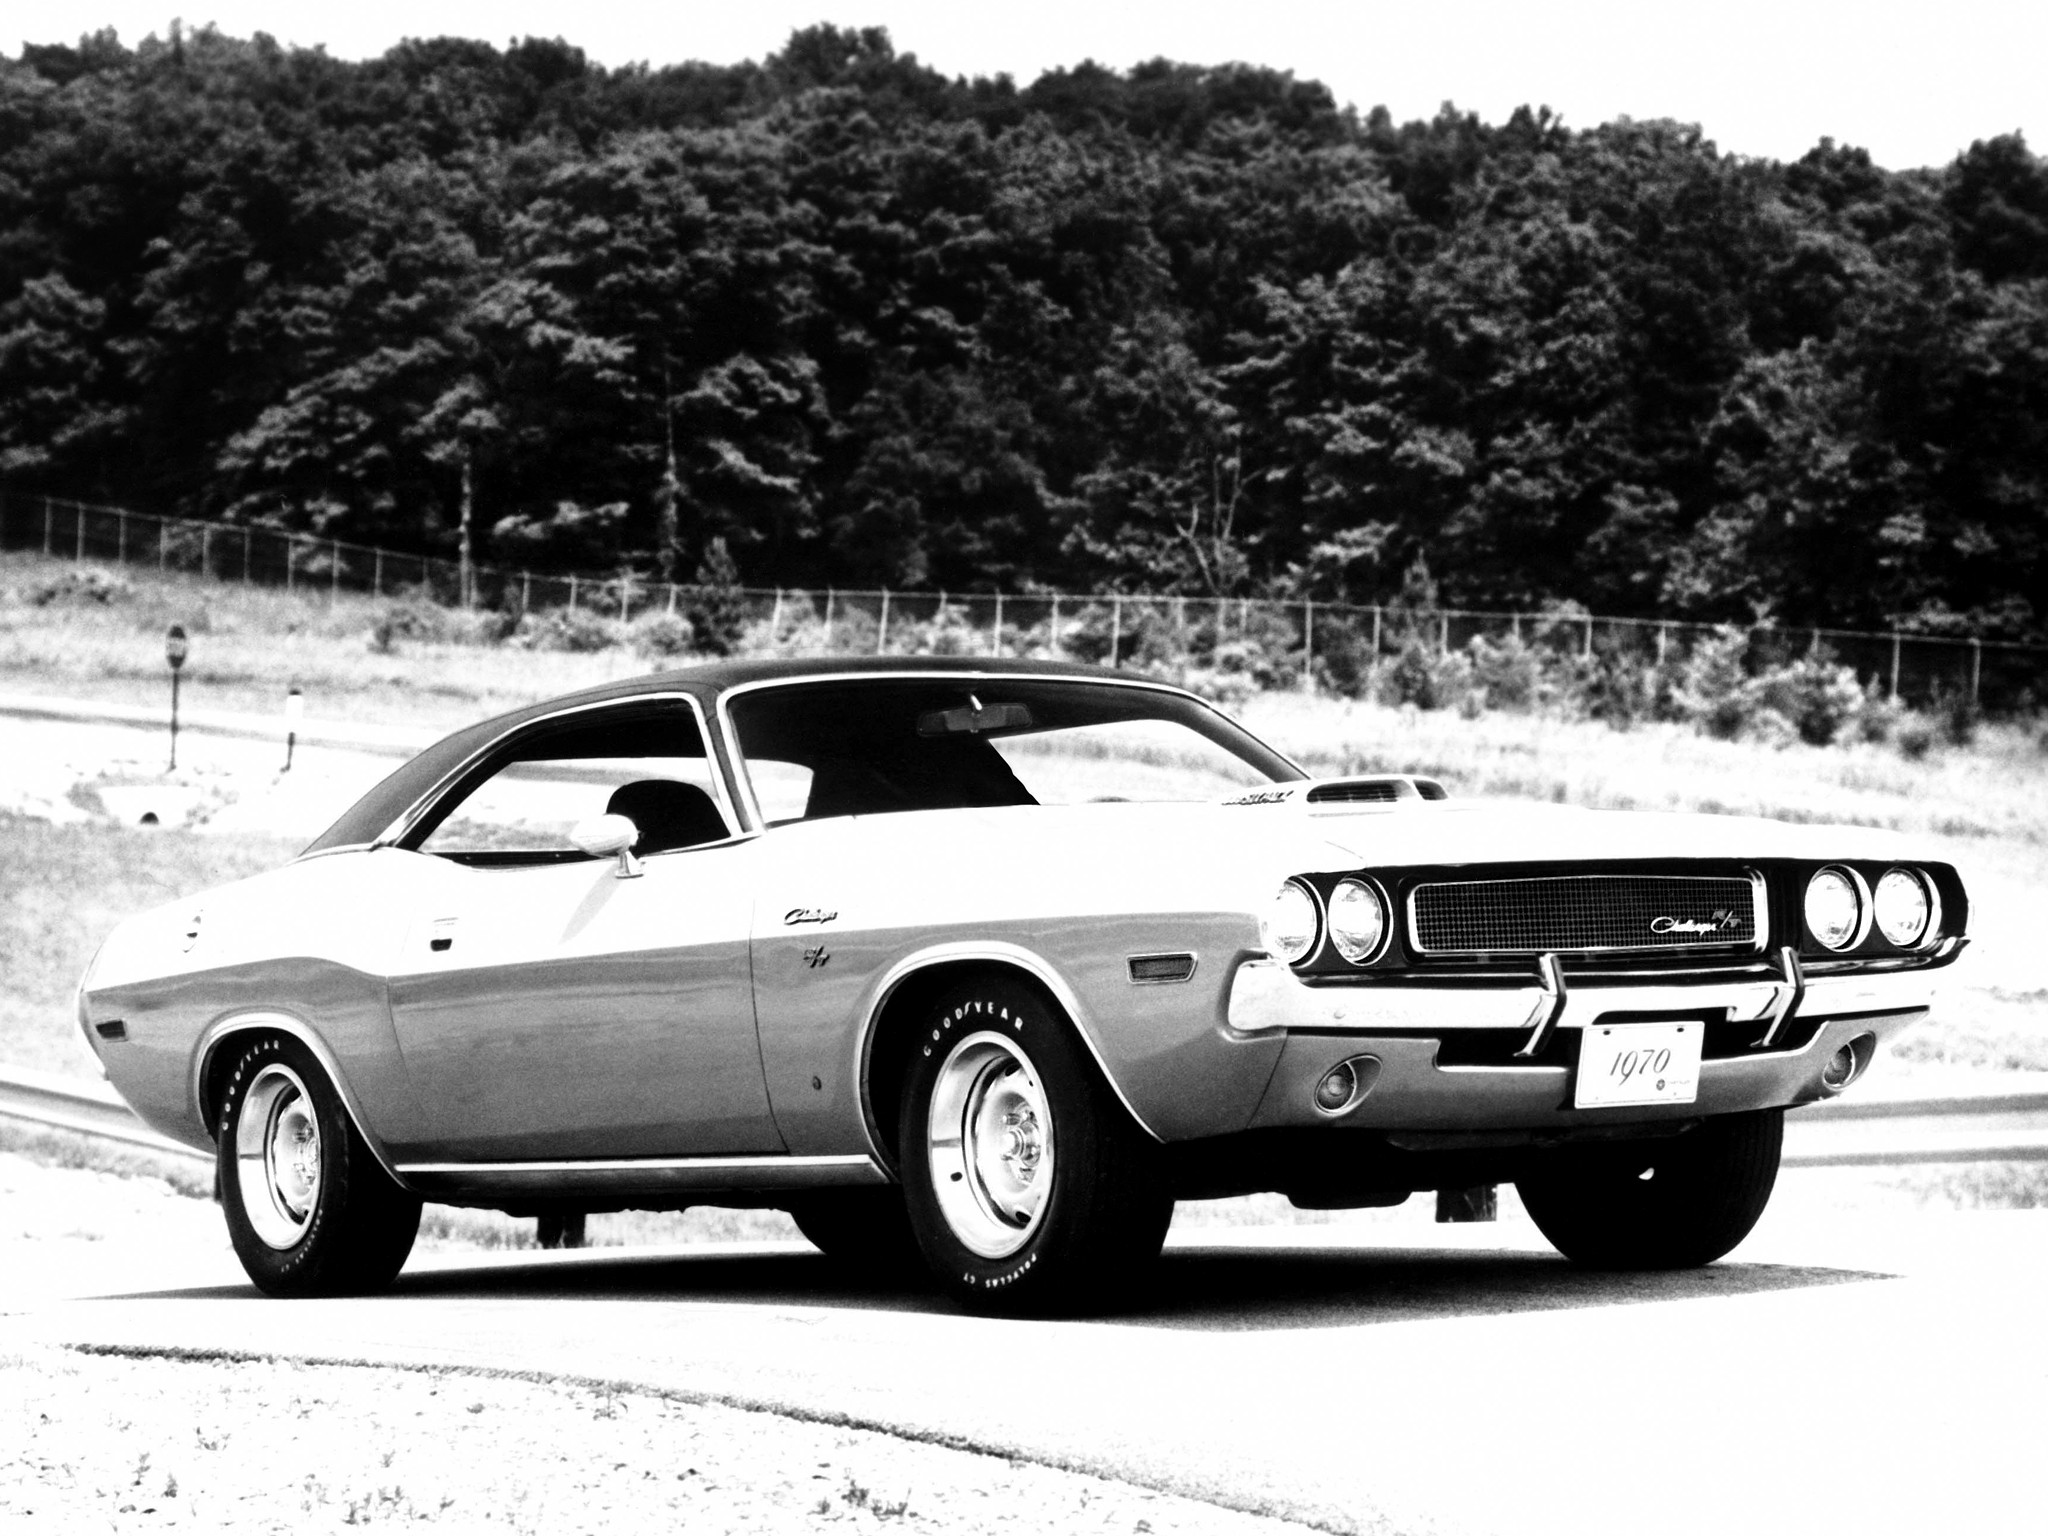 Dodge Challenger Specs Photos 1969 1970 1971 1972 HD Wallpapers Download free images and photos [musssic.tk]